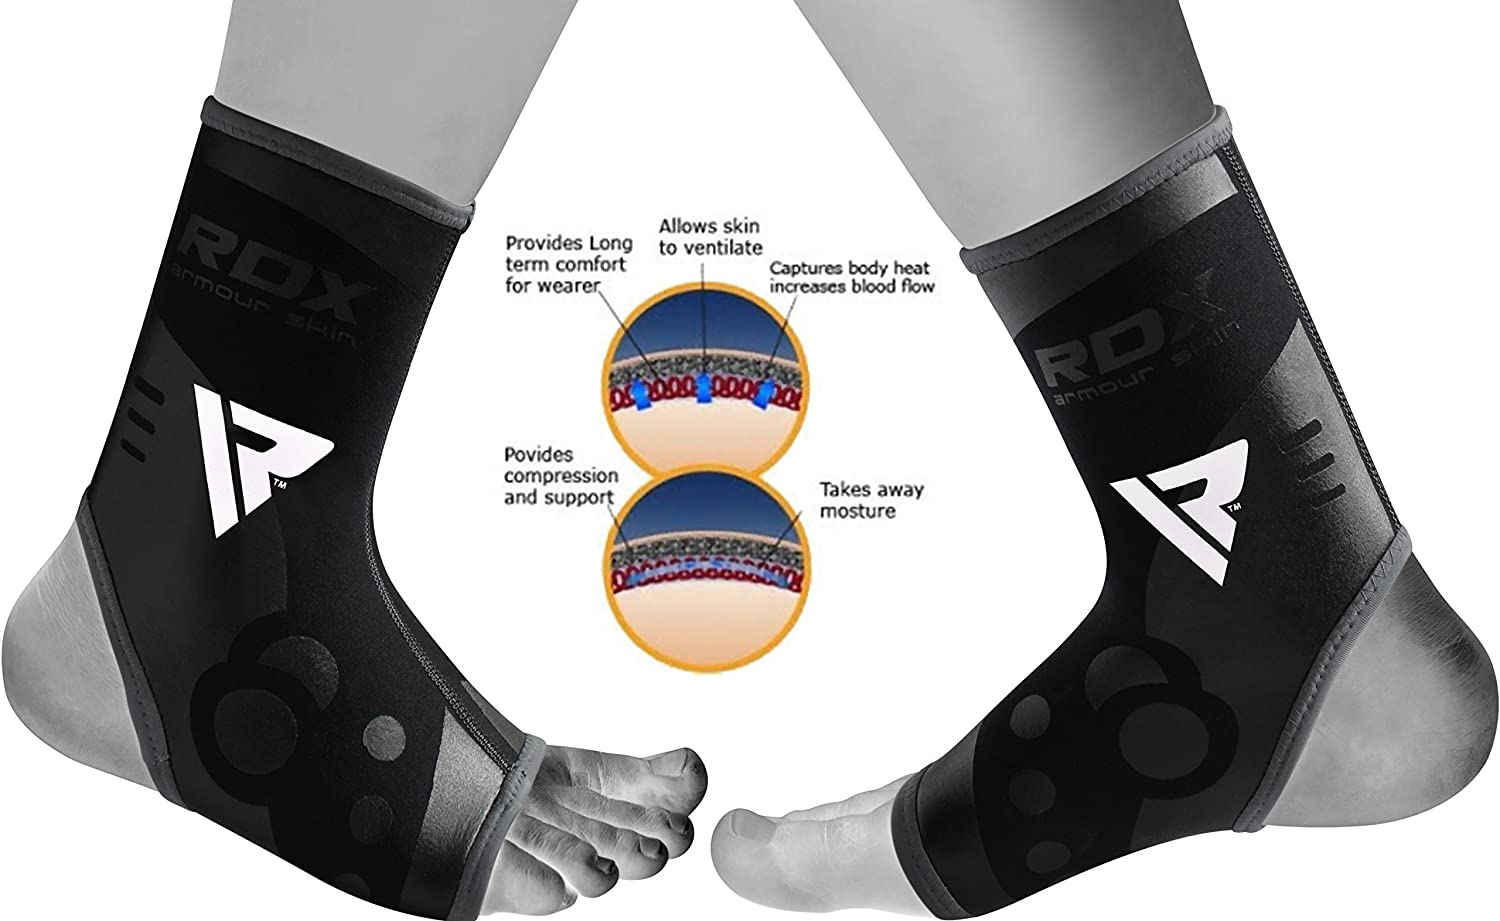 RDX Ankle Support Neoprene Brace Foot Guard MMA Pad Protector Achilles Tendon Pain Support Sold AS Single Item